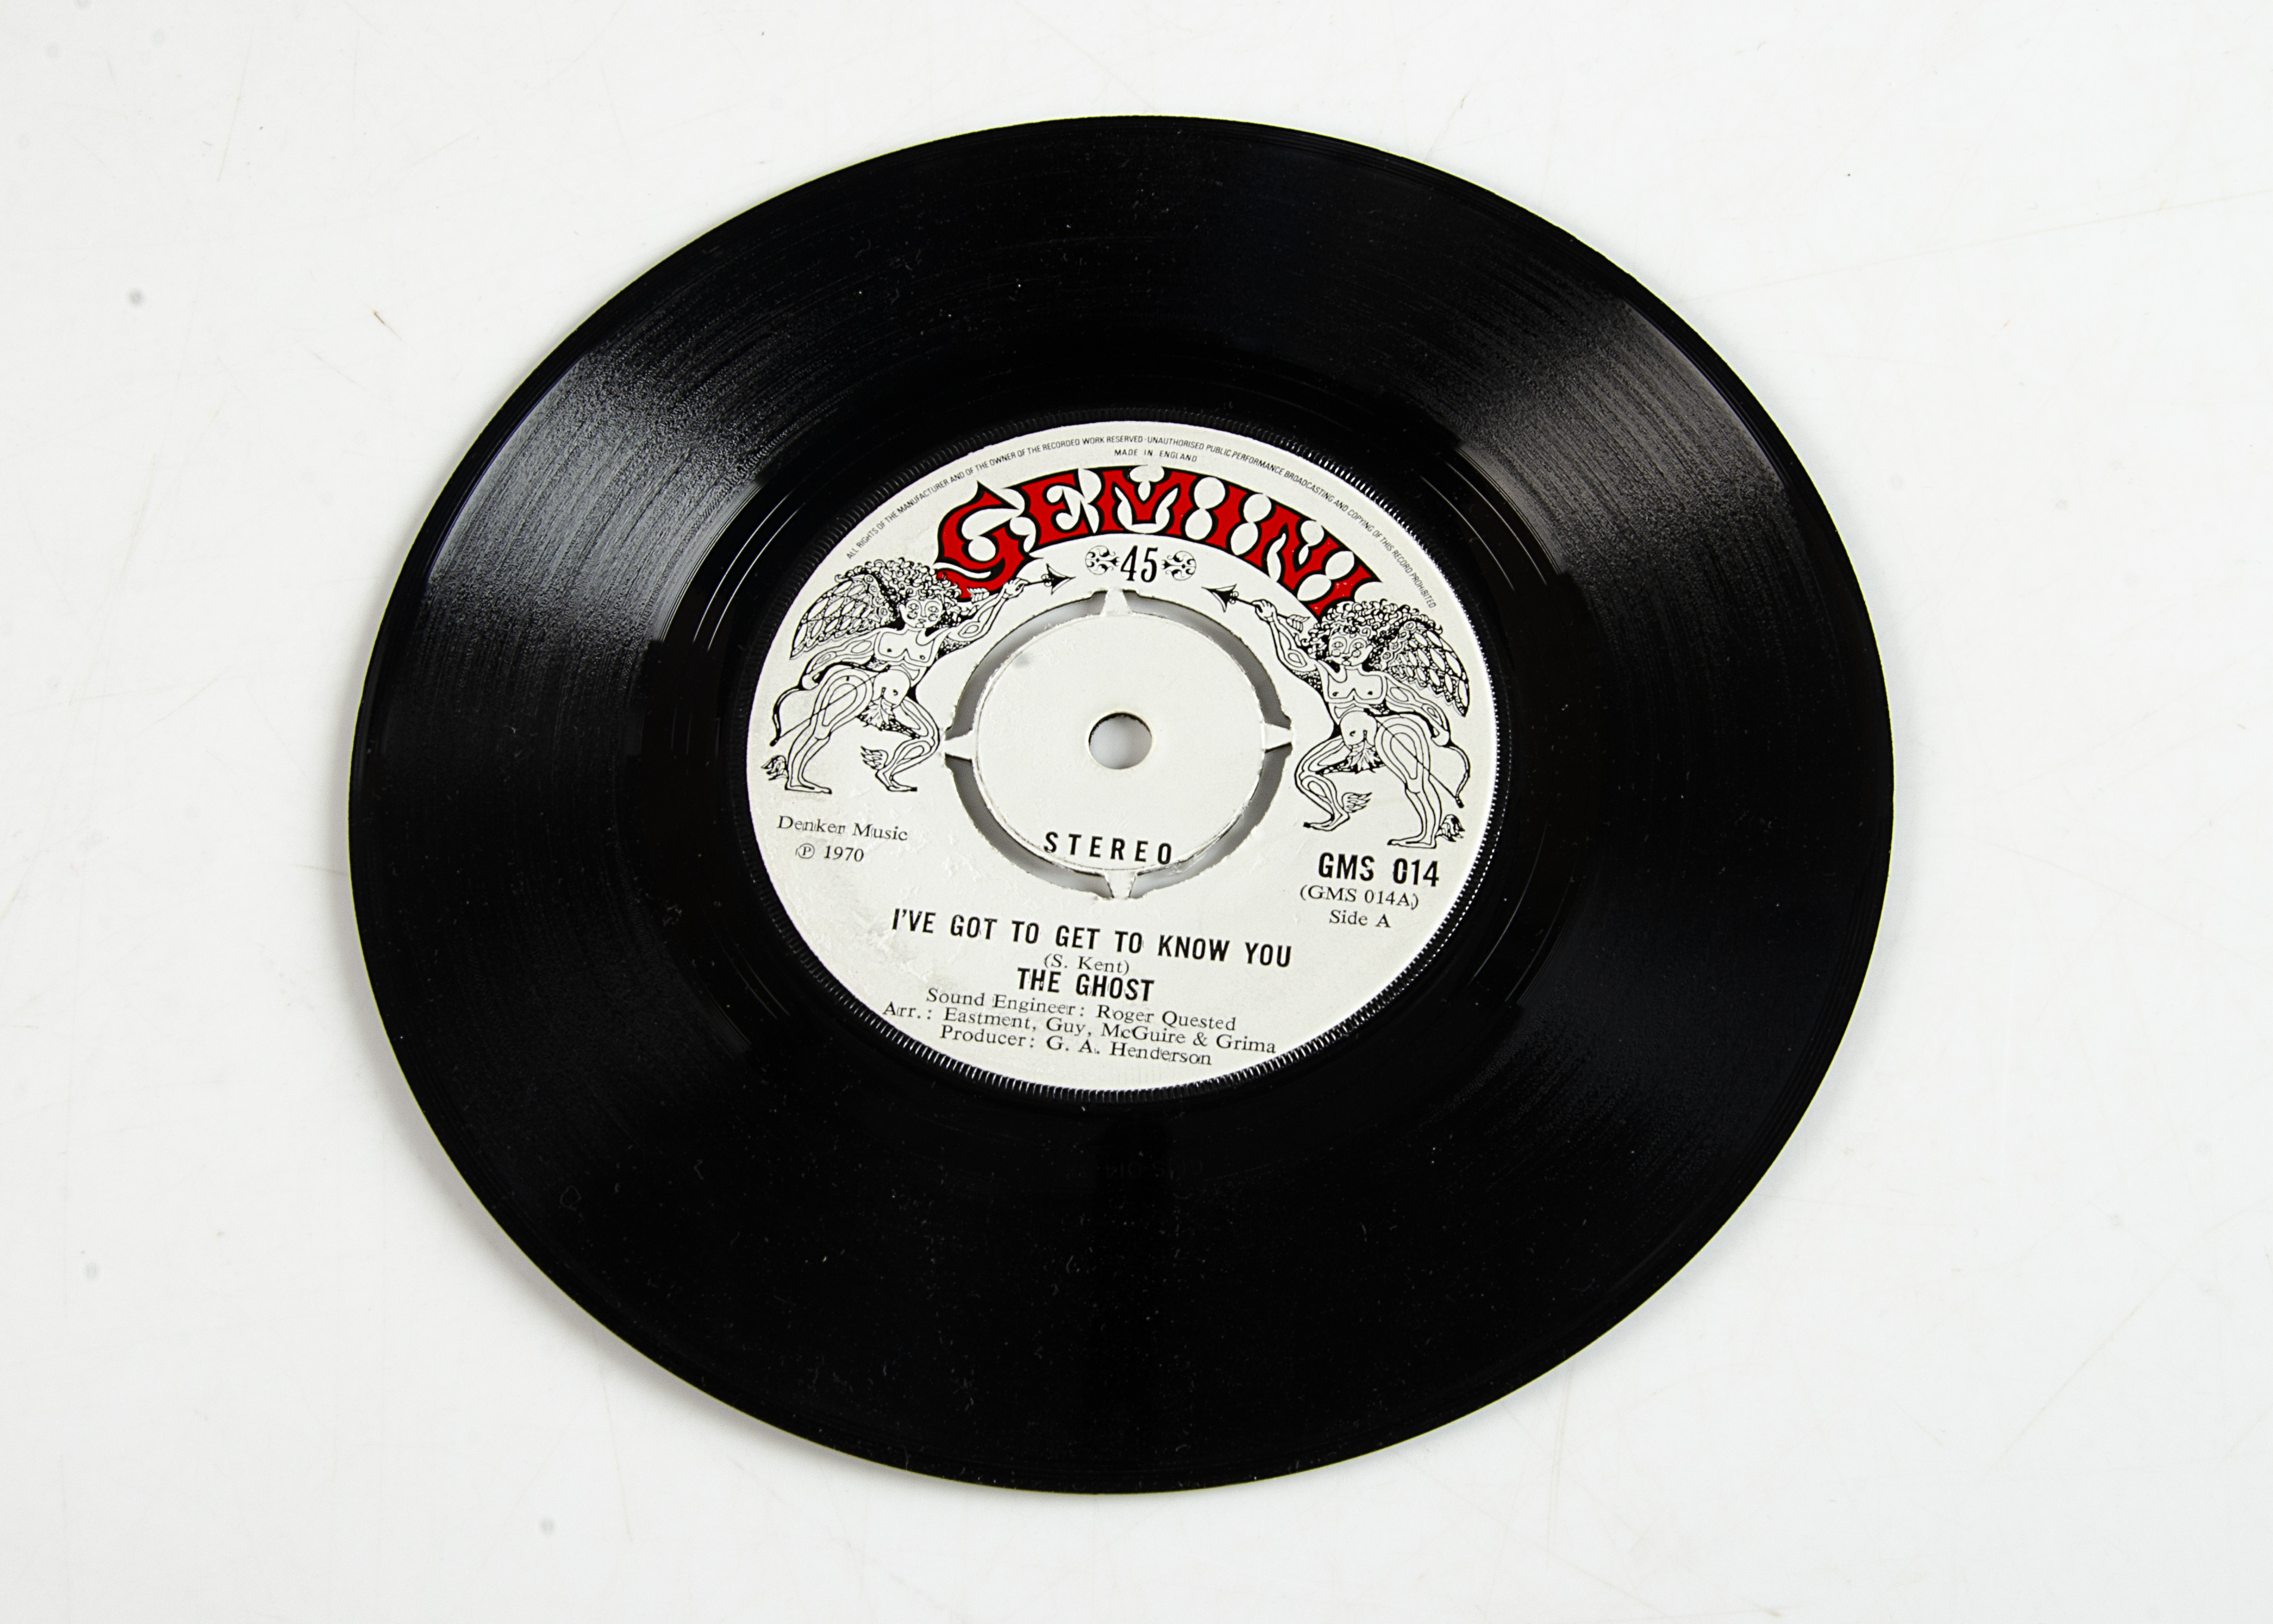 """The Ghost 7"""" Single, I've Got To Get To Know You b/w For One Second 7"""" Single - original UK"""